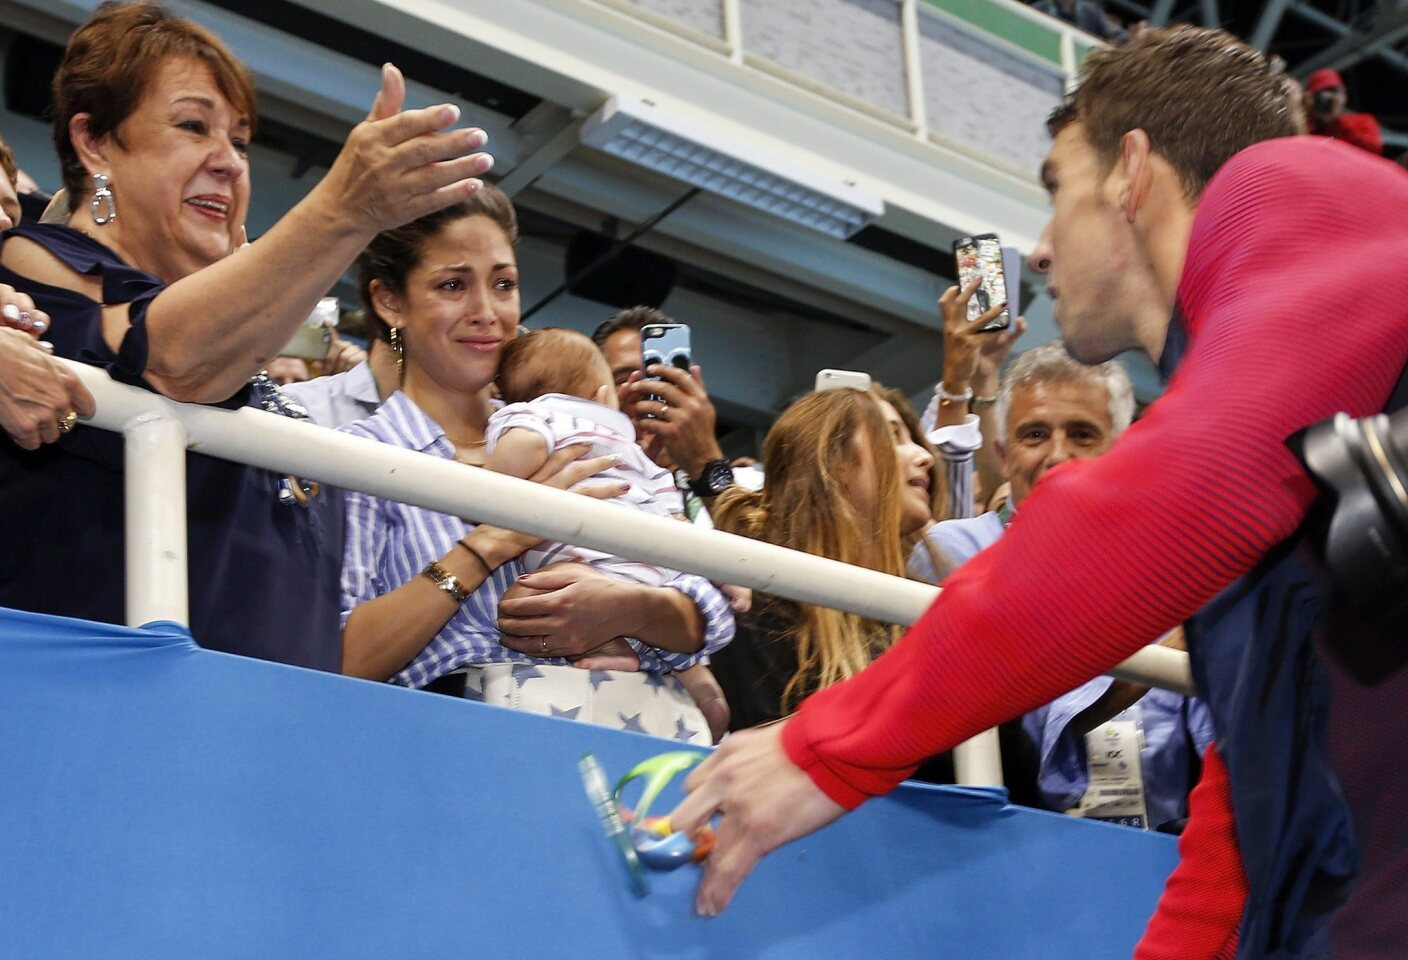 Michael Phelps of USA (R) goes to see his mother Deborah (L), his fiancee Nicole Johnson (C) and their son Boomer during the round of honour after the medal ceremony for the men's 200m Butterfly final race of the Rio 2016 Olympic Games Swimming events at Olympic Aquatics Stadium at the Olympic Park in Rio de Janeiro, Brazil.